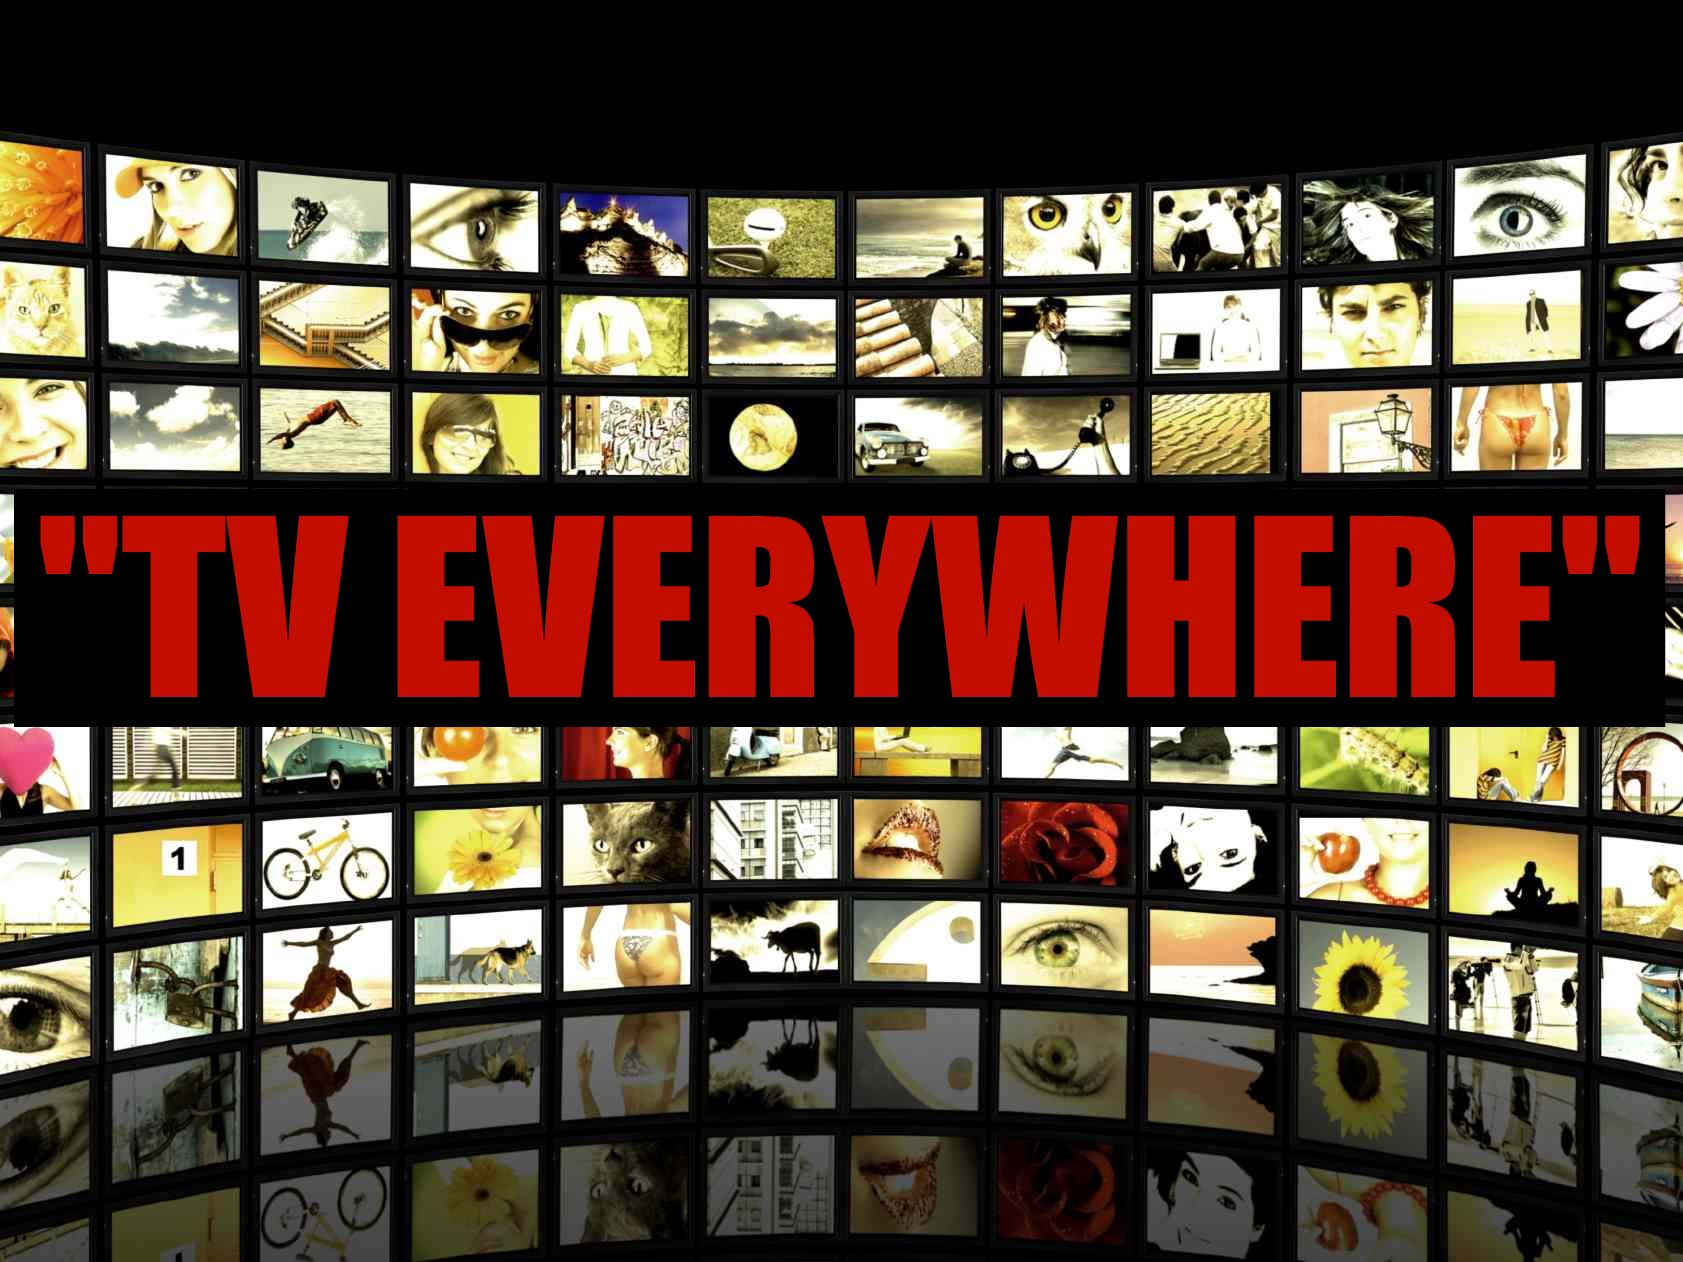 lazarus nbc committed to tv everywhere tv news check